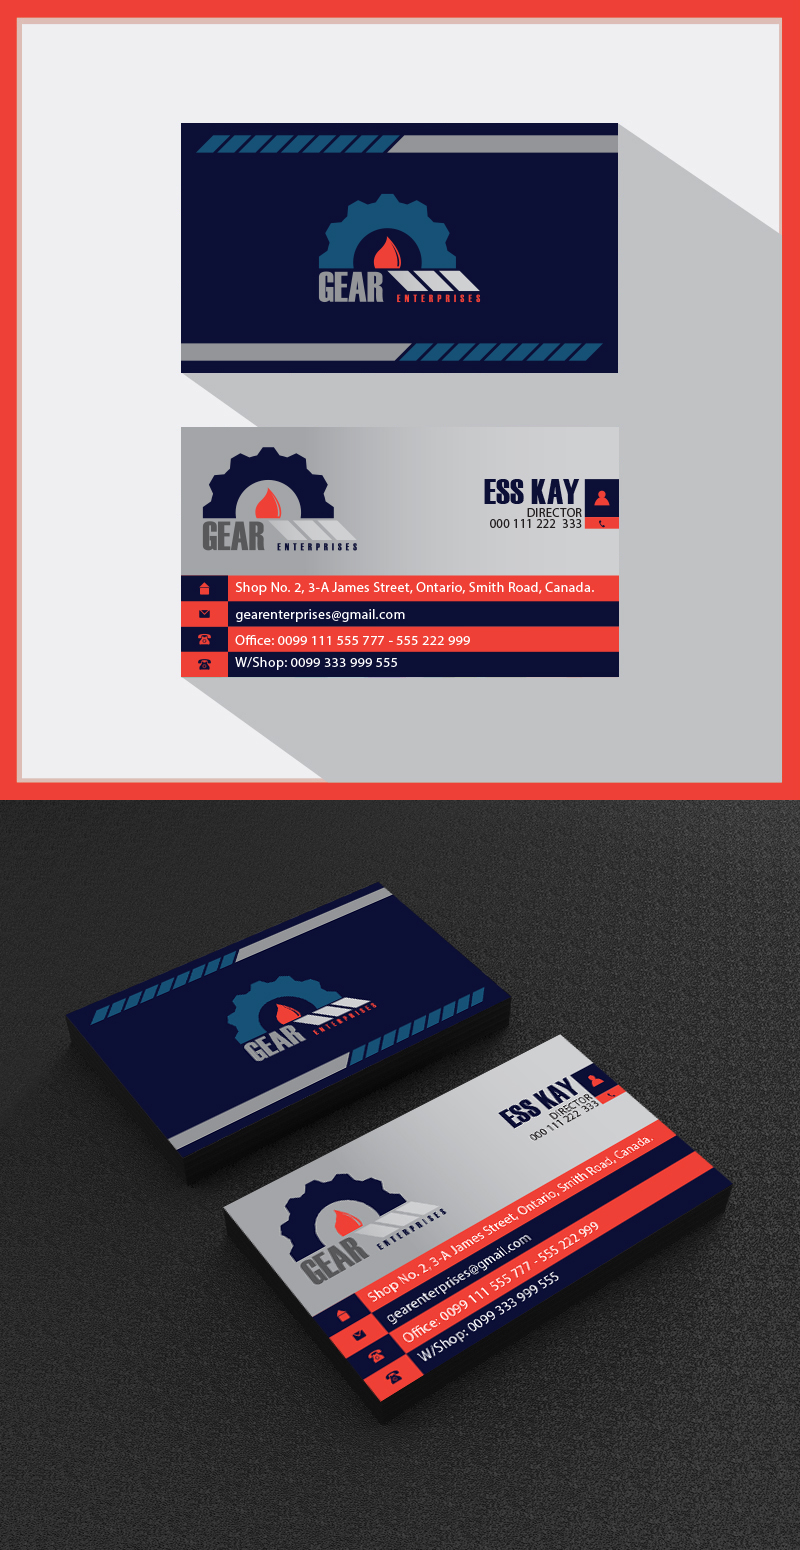 Business-Card-Template-Design-For-Engineering-Company